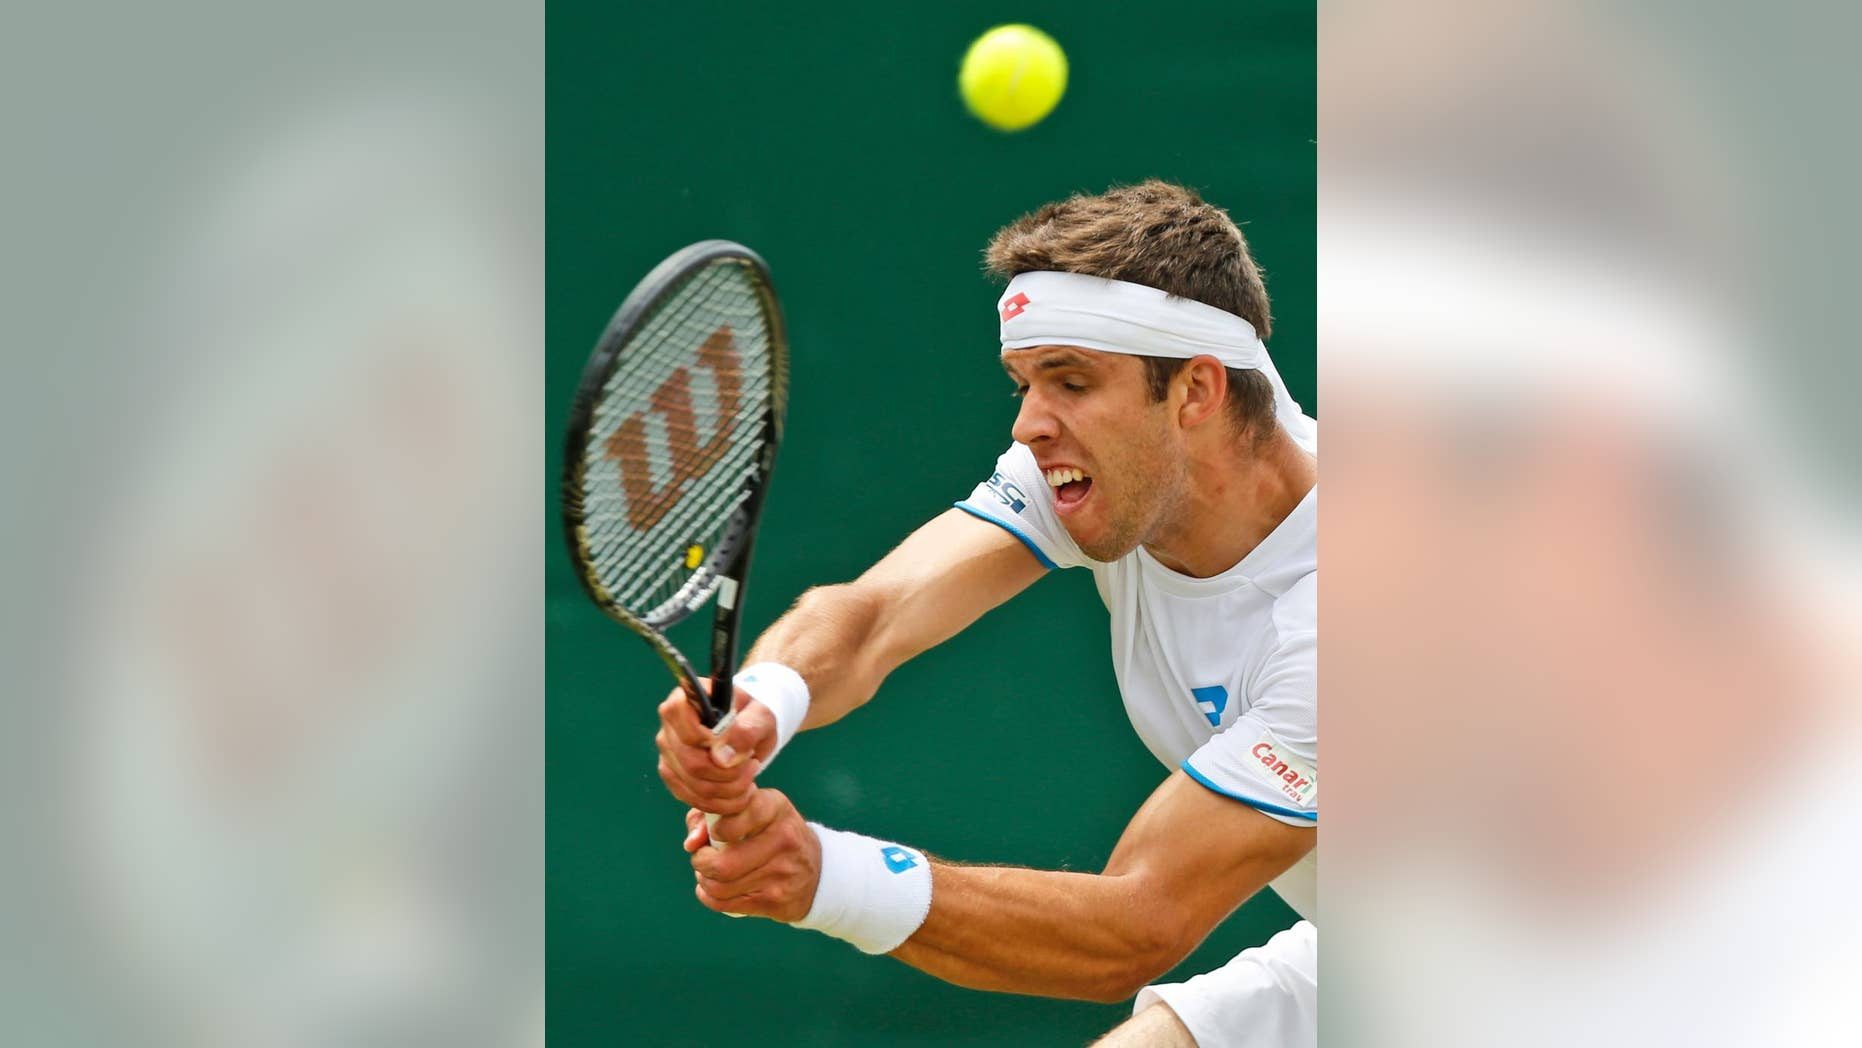 Jiri Vesely of the Czech Republic plays a return to Gael Monfils of France during their men's singles match at the All England Lawn Tennis Championships in Wimbledon, London, Thursday, June 26, 2014. (AP Photo/Sang Tan)